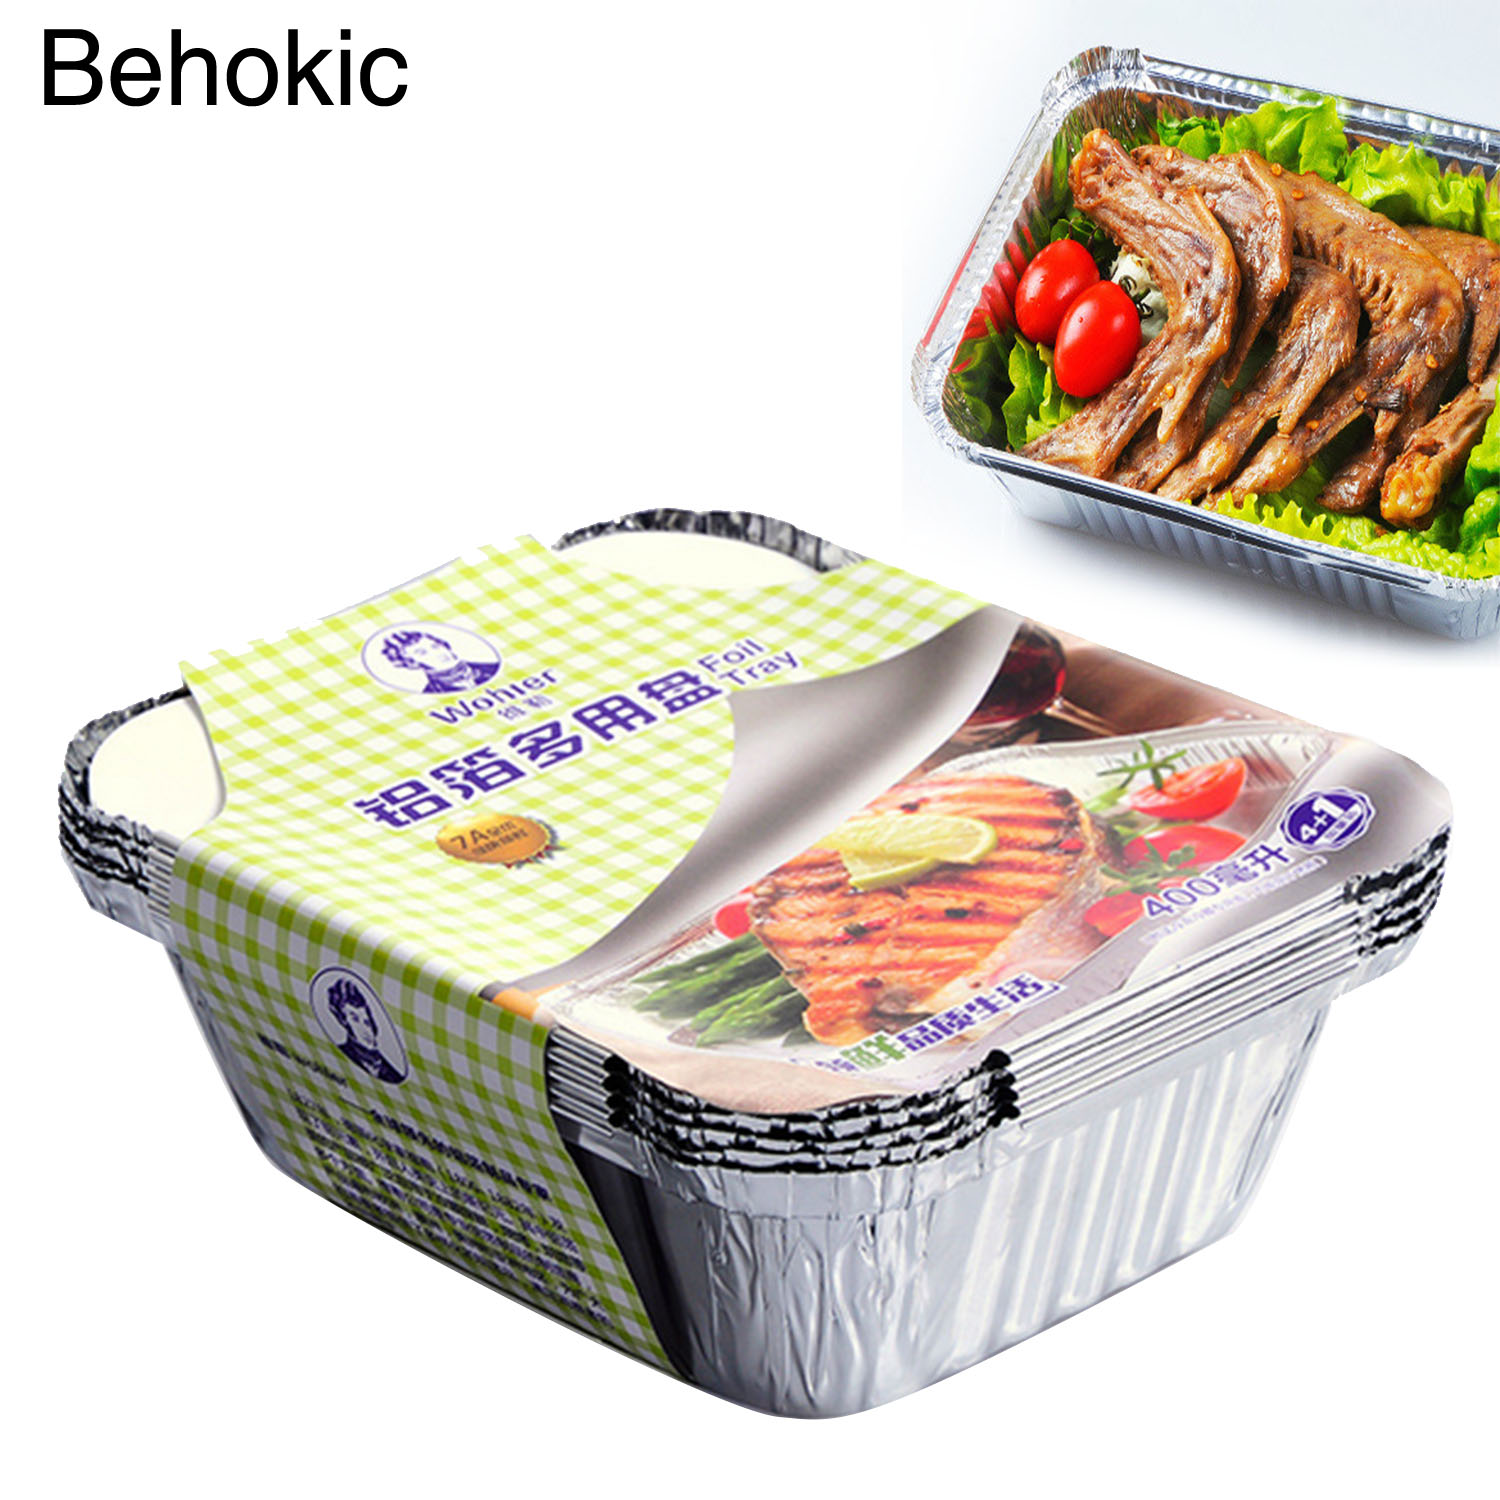 Behogar 5 PCS 400ml Sanitary Grills Compatible Aluminum Foil Plate Pans Seal with Lids for BBQ Barbecue Baking Making Food Fresh